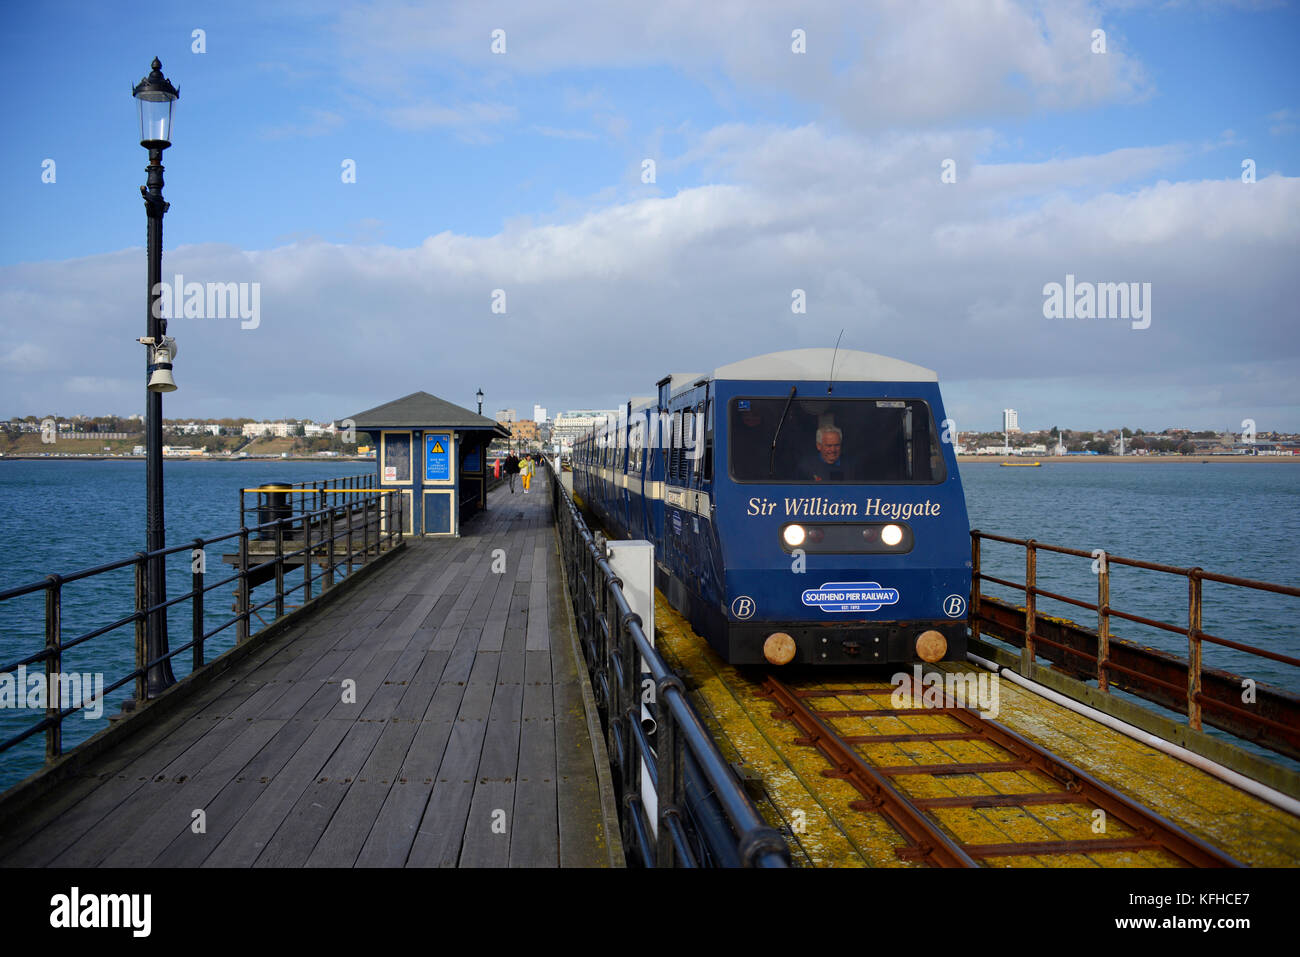 Southend Pier railway train with driver and walkway shelter. Lamp. Space for copy - Stock Image